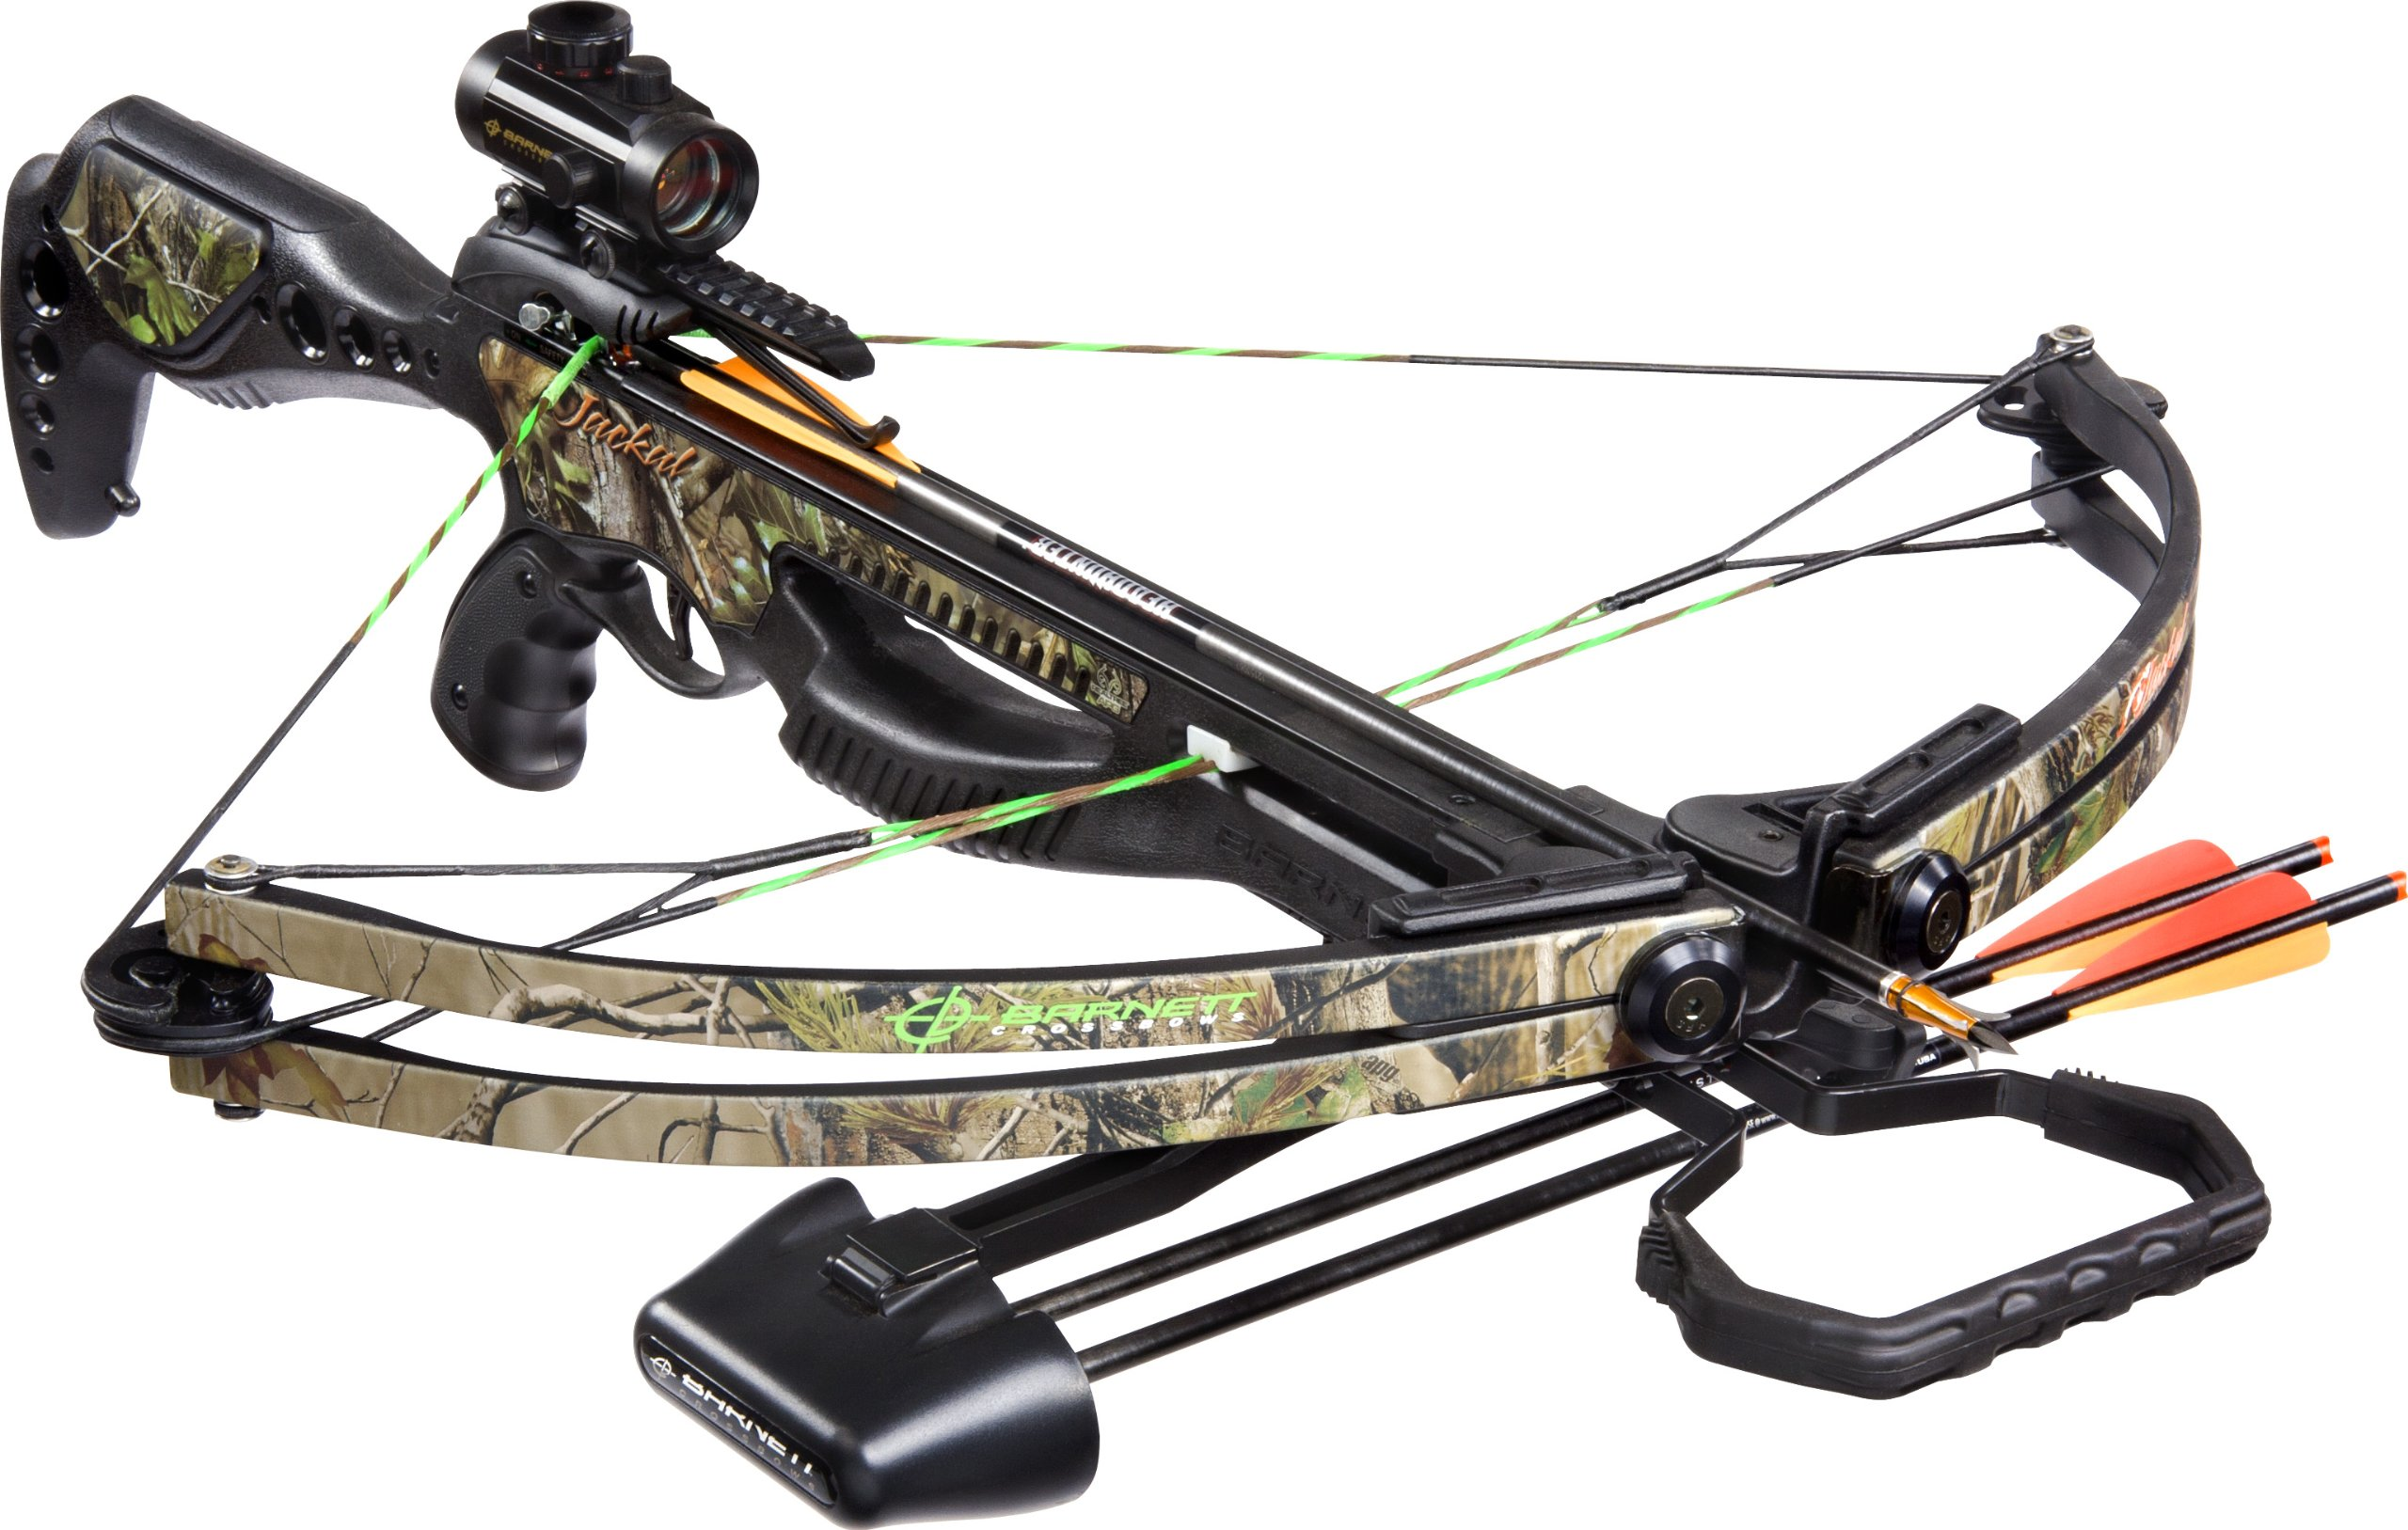 Barnett Jackal Crossbow Package (Quiver, 3 - 20-Inch Arrows and Premium Red Dot Sight)